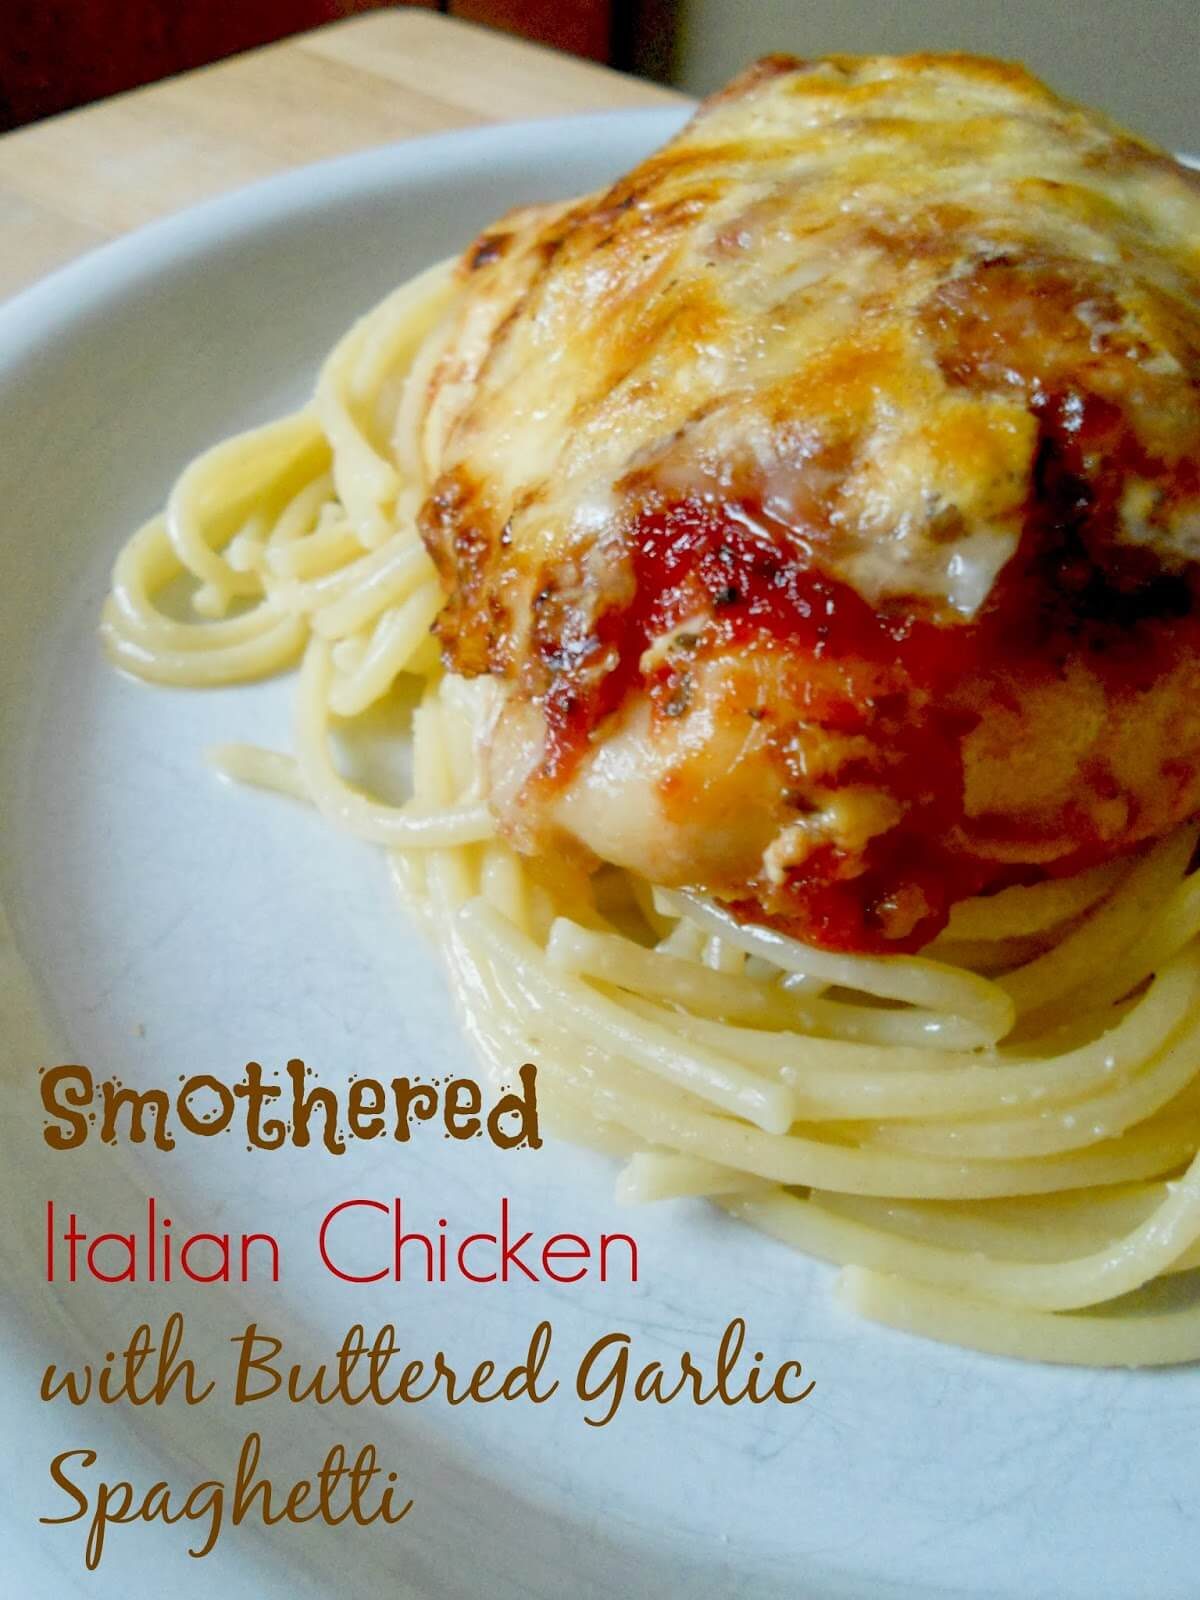 Smothered Italian Chicken with Buttered Garlic Spaghetti from Sweet and Savory Food